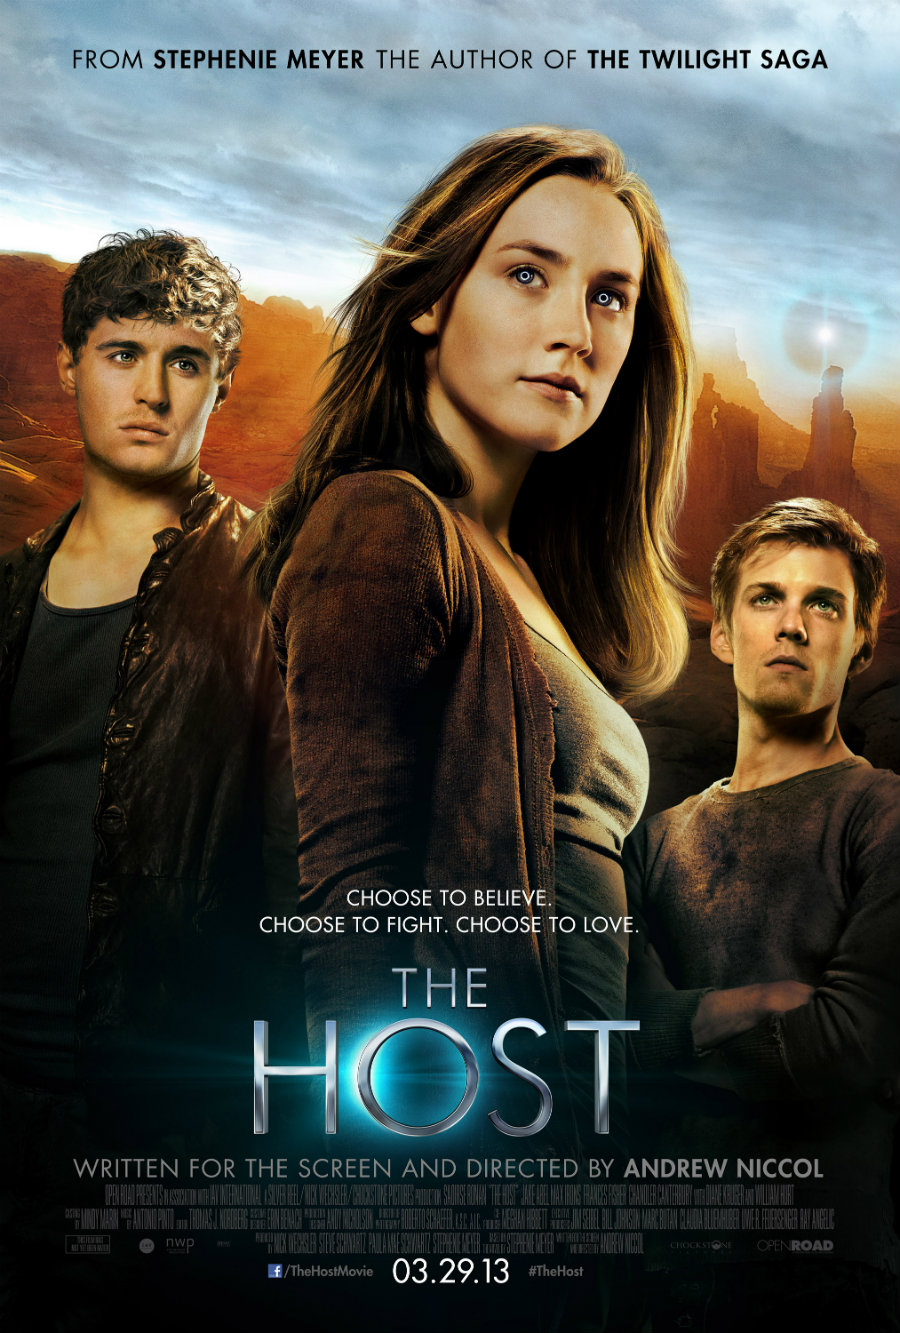 The-Host-Movie-Poster-Large.jpg